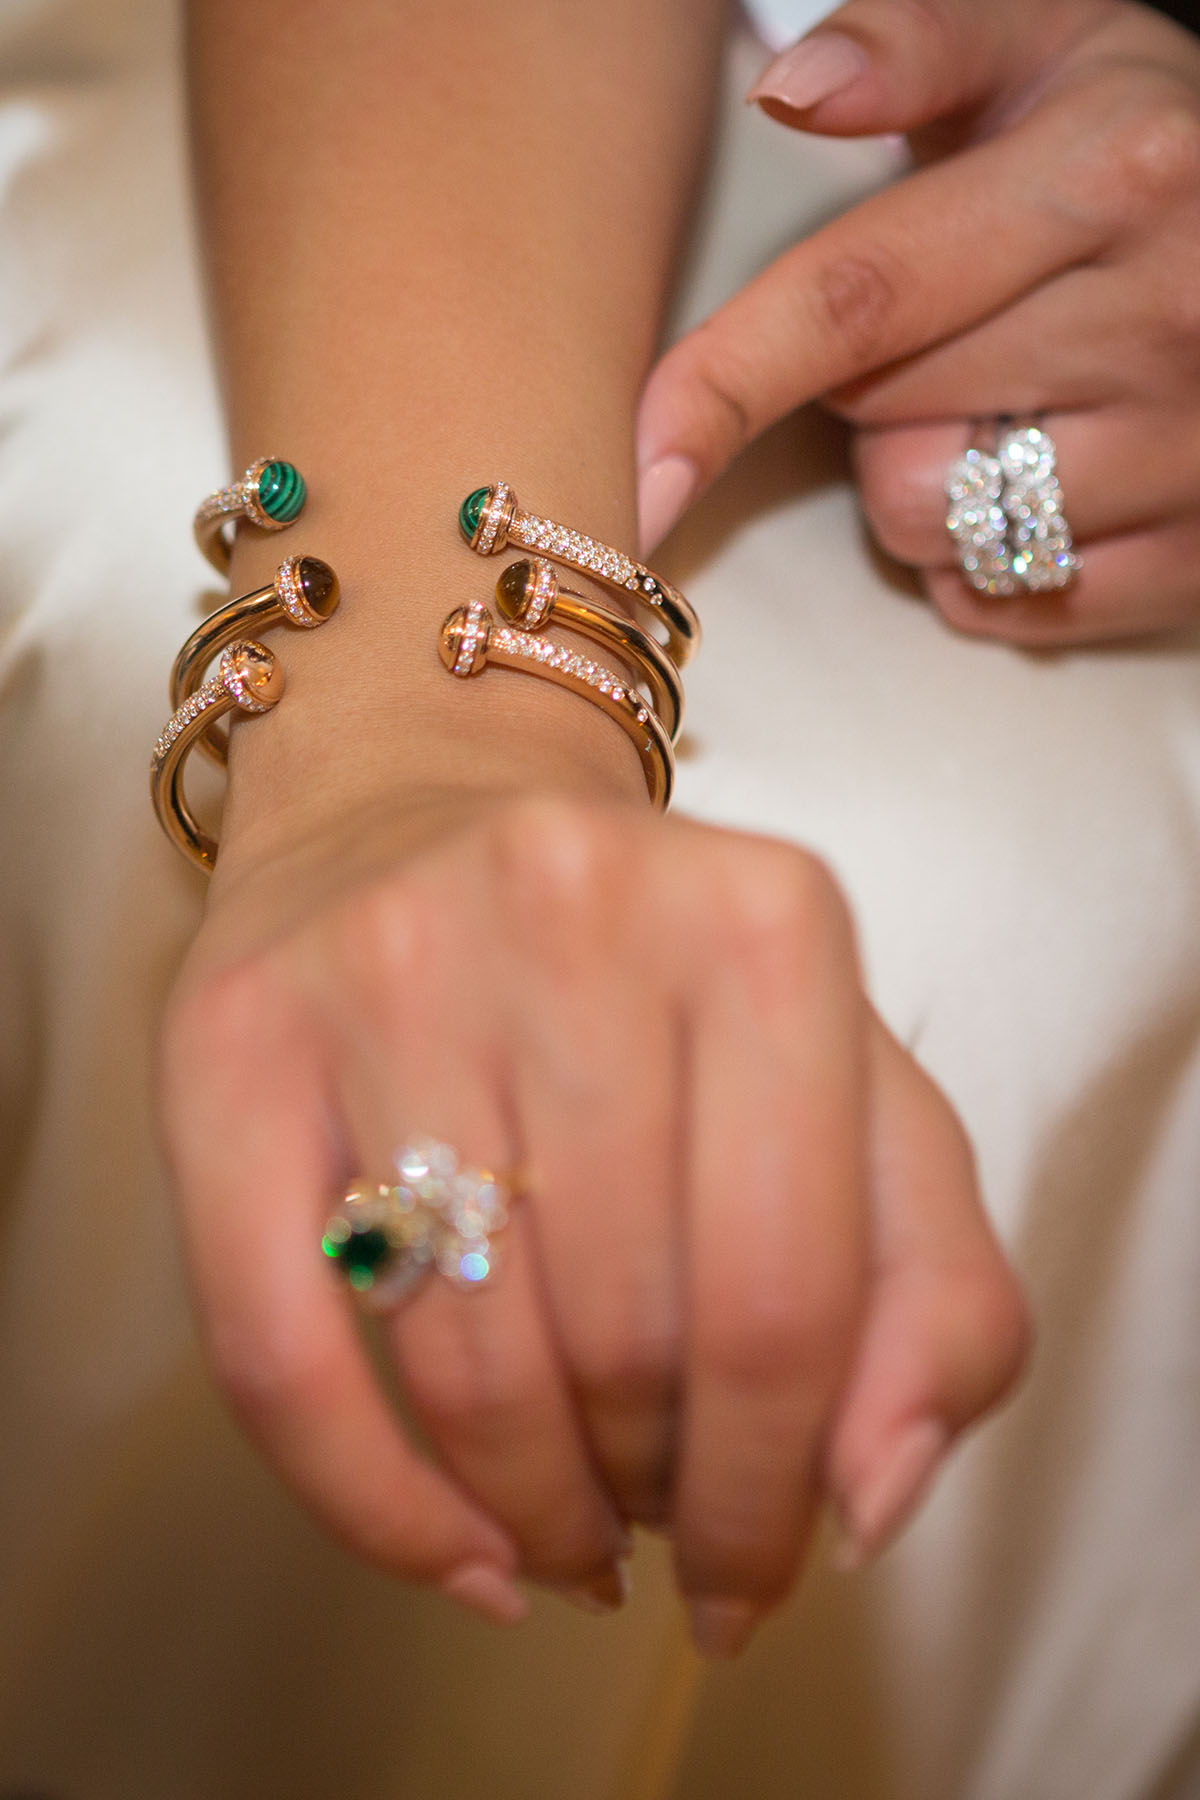 Guest trying on 3 new bracelets at the Piaget event by Loesje Kessels Fashion Photographer Dubai